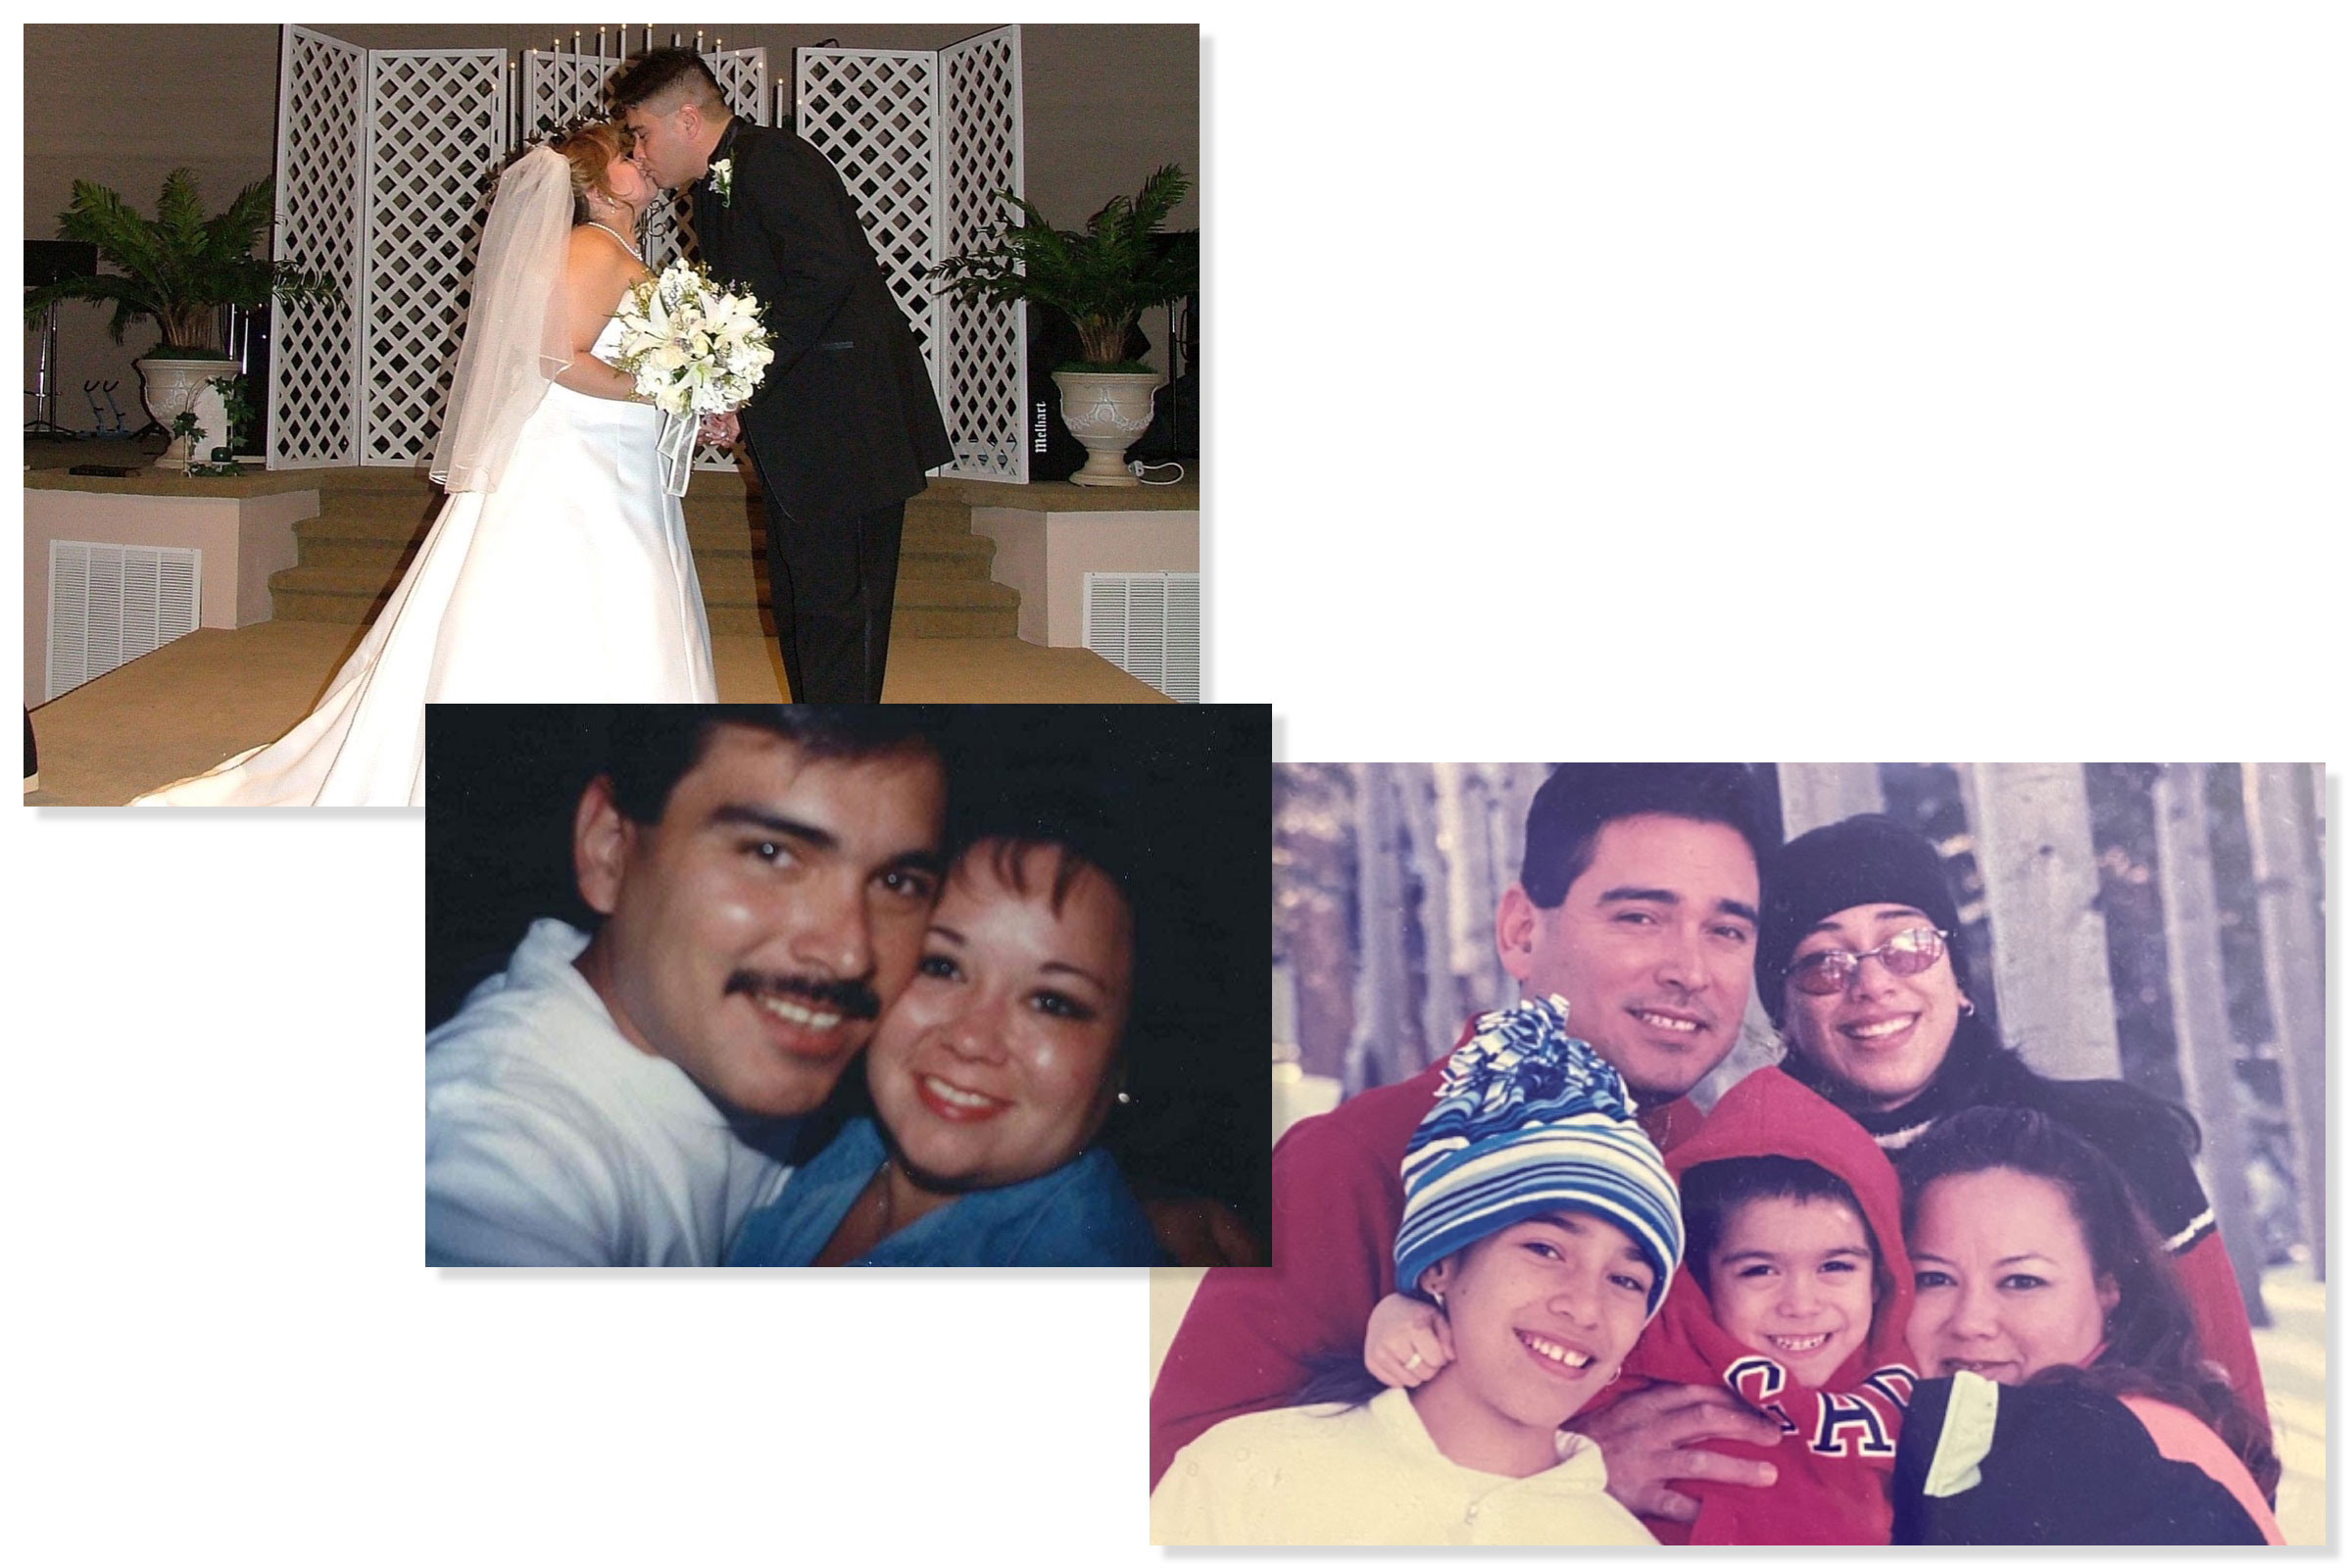 Randy Hinojosa and his late wife Elisa are pictured, top left, at their wedding in 2003. The two met 26 years ago. They share three children, including a 23-year-old son and two daughters, age 28 and 31. Elisa died of COVID-19 in a Texas hospital on Oct. 25.